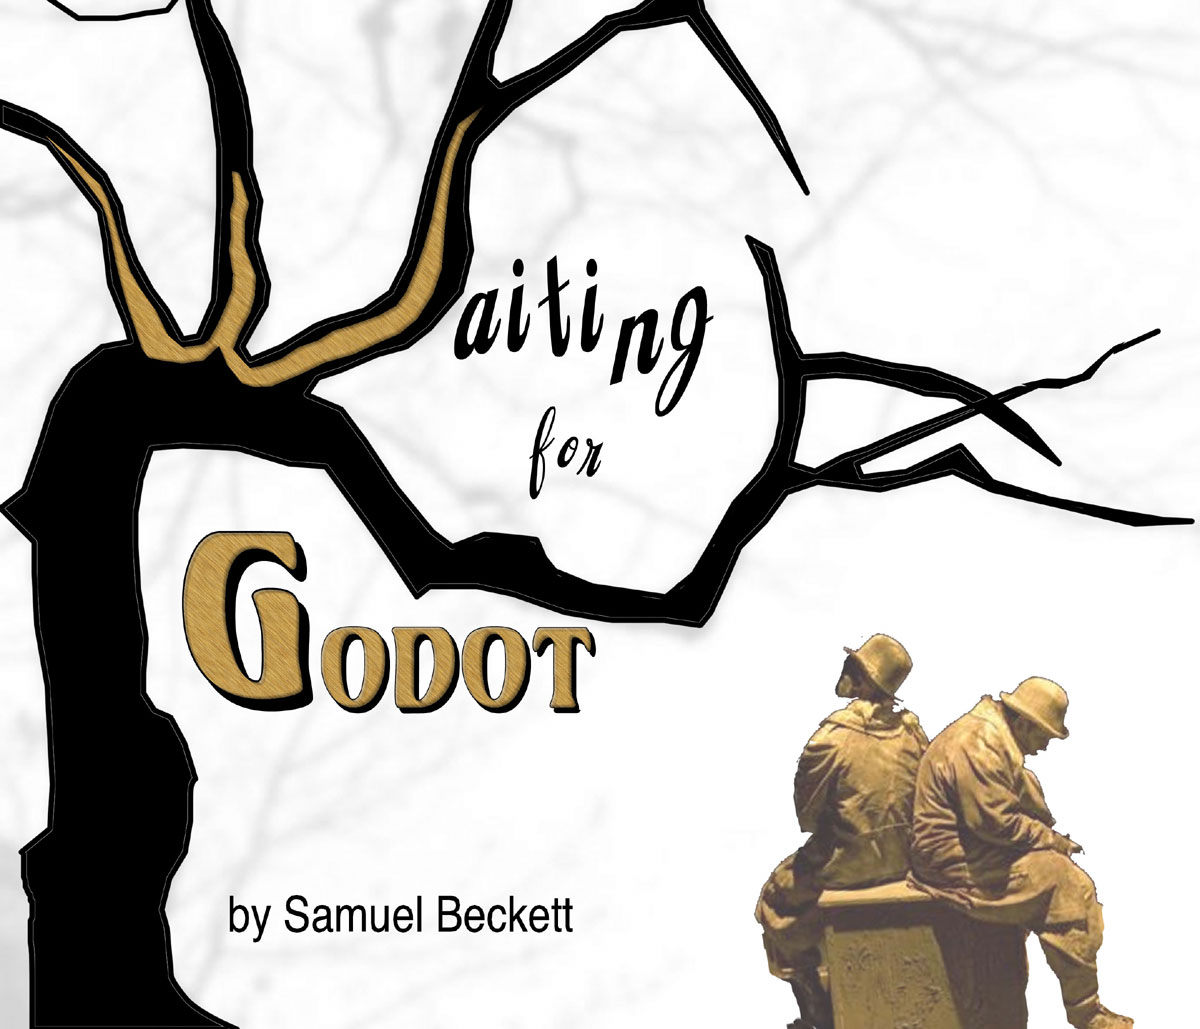 a social critique of samuel becketts waiting for godot Best known as the author of waiting for godot , samuel beckett was one of the most distinguished writers of the 20th century he was the critical response to samuel beckett social facebook twitter linkedin instagram refer a friend.